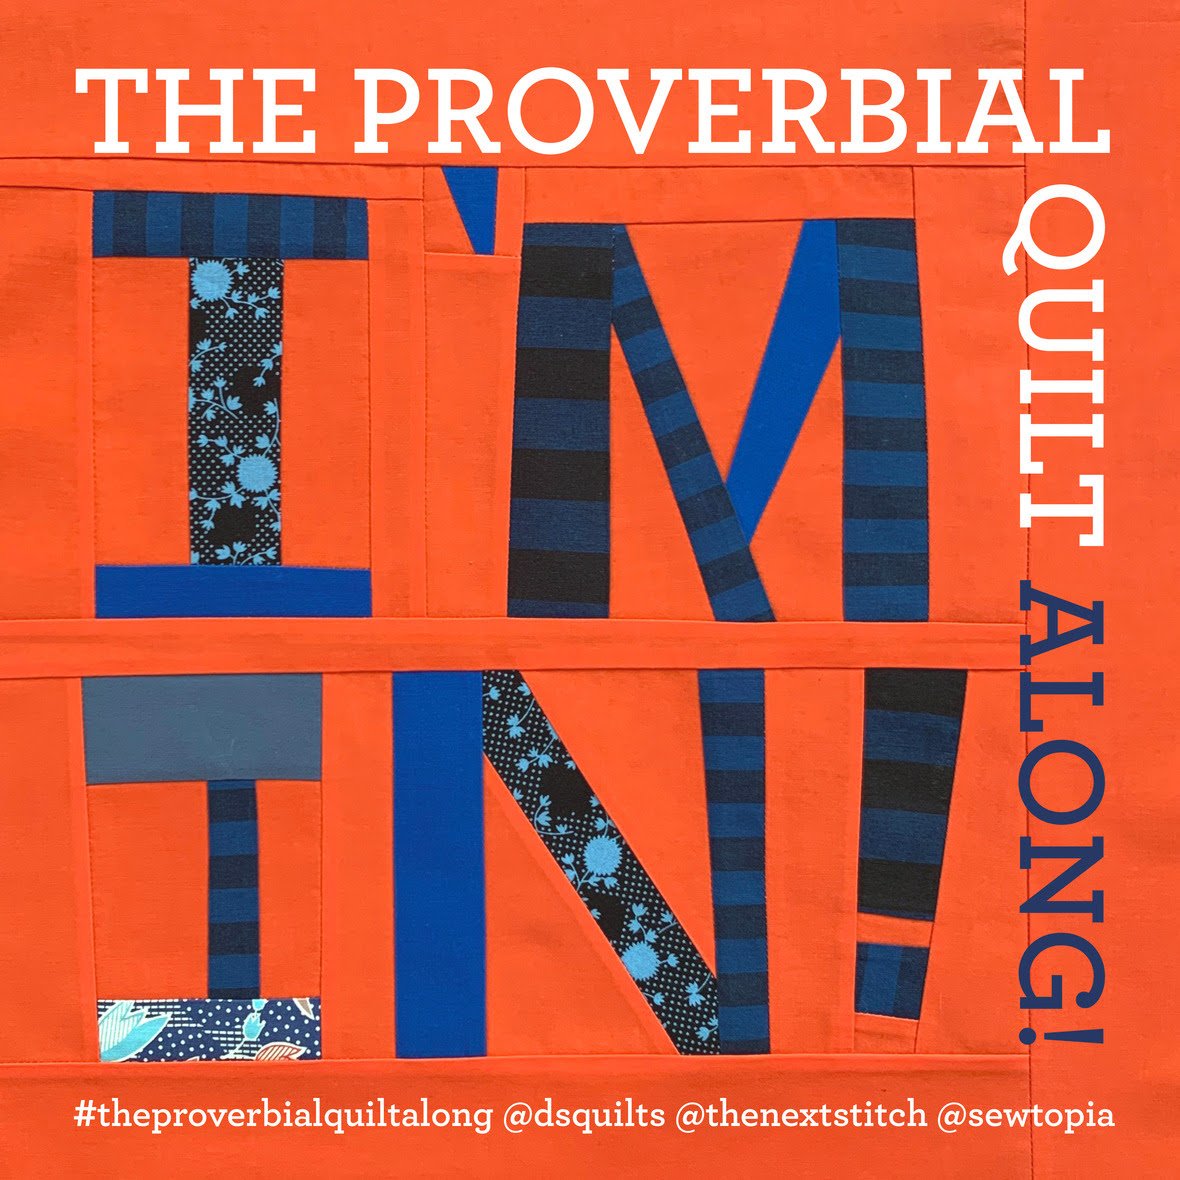 #theproverbialquiltalong